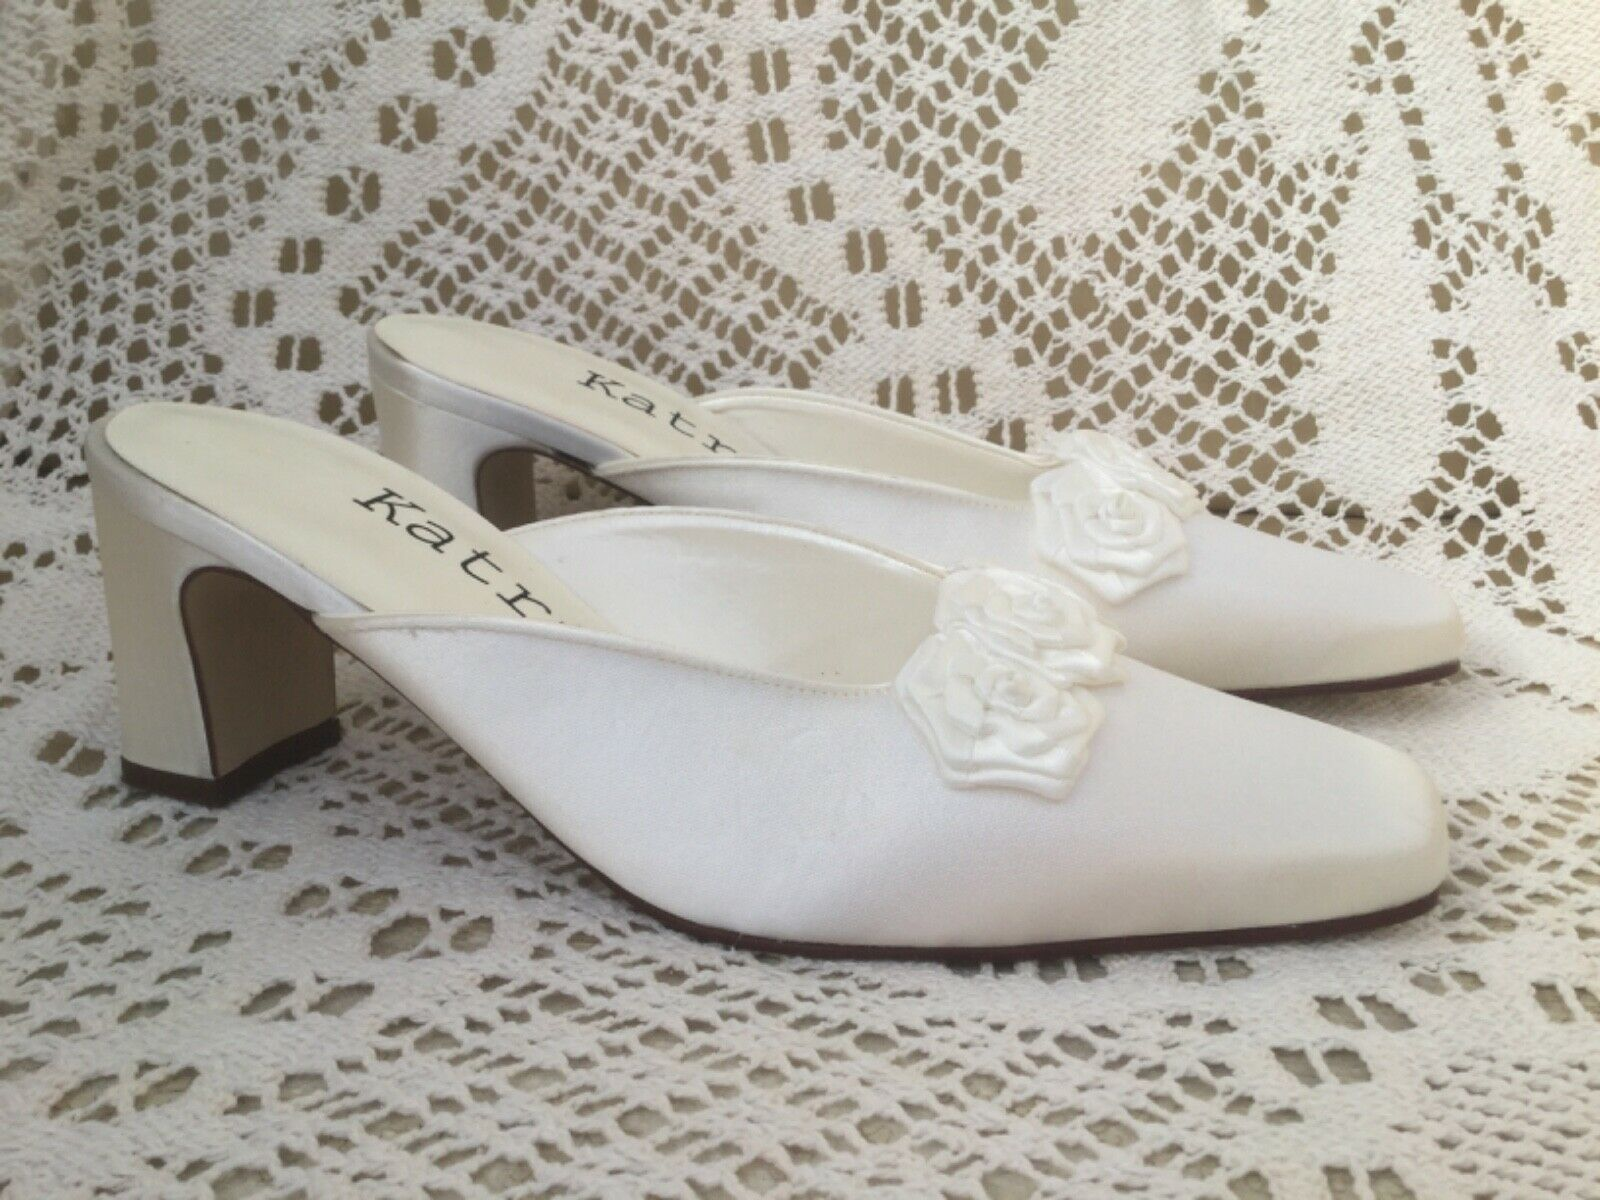 Wedding bridal shoes size 3.5 off white / cream satin with 2 inch heel